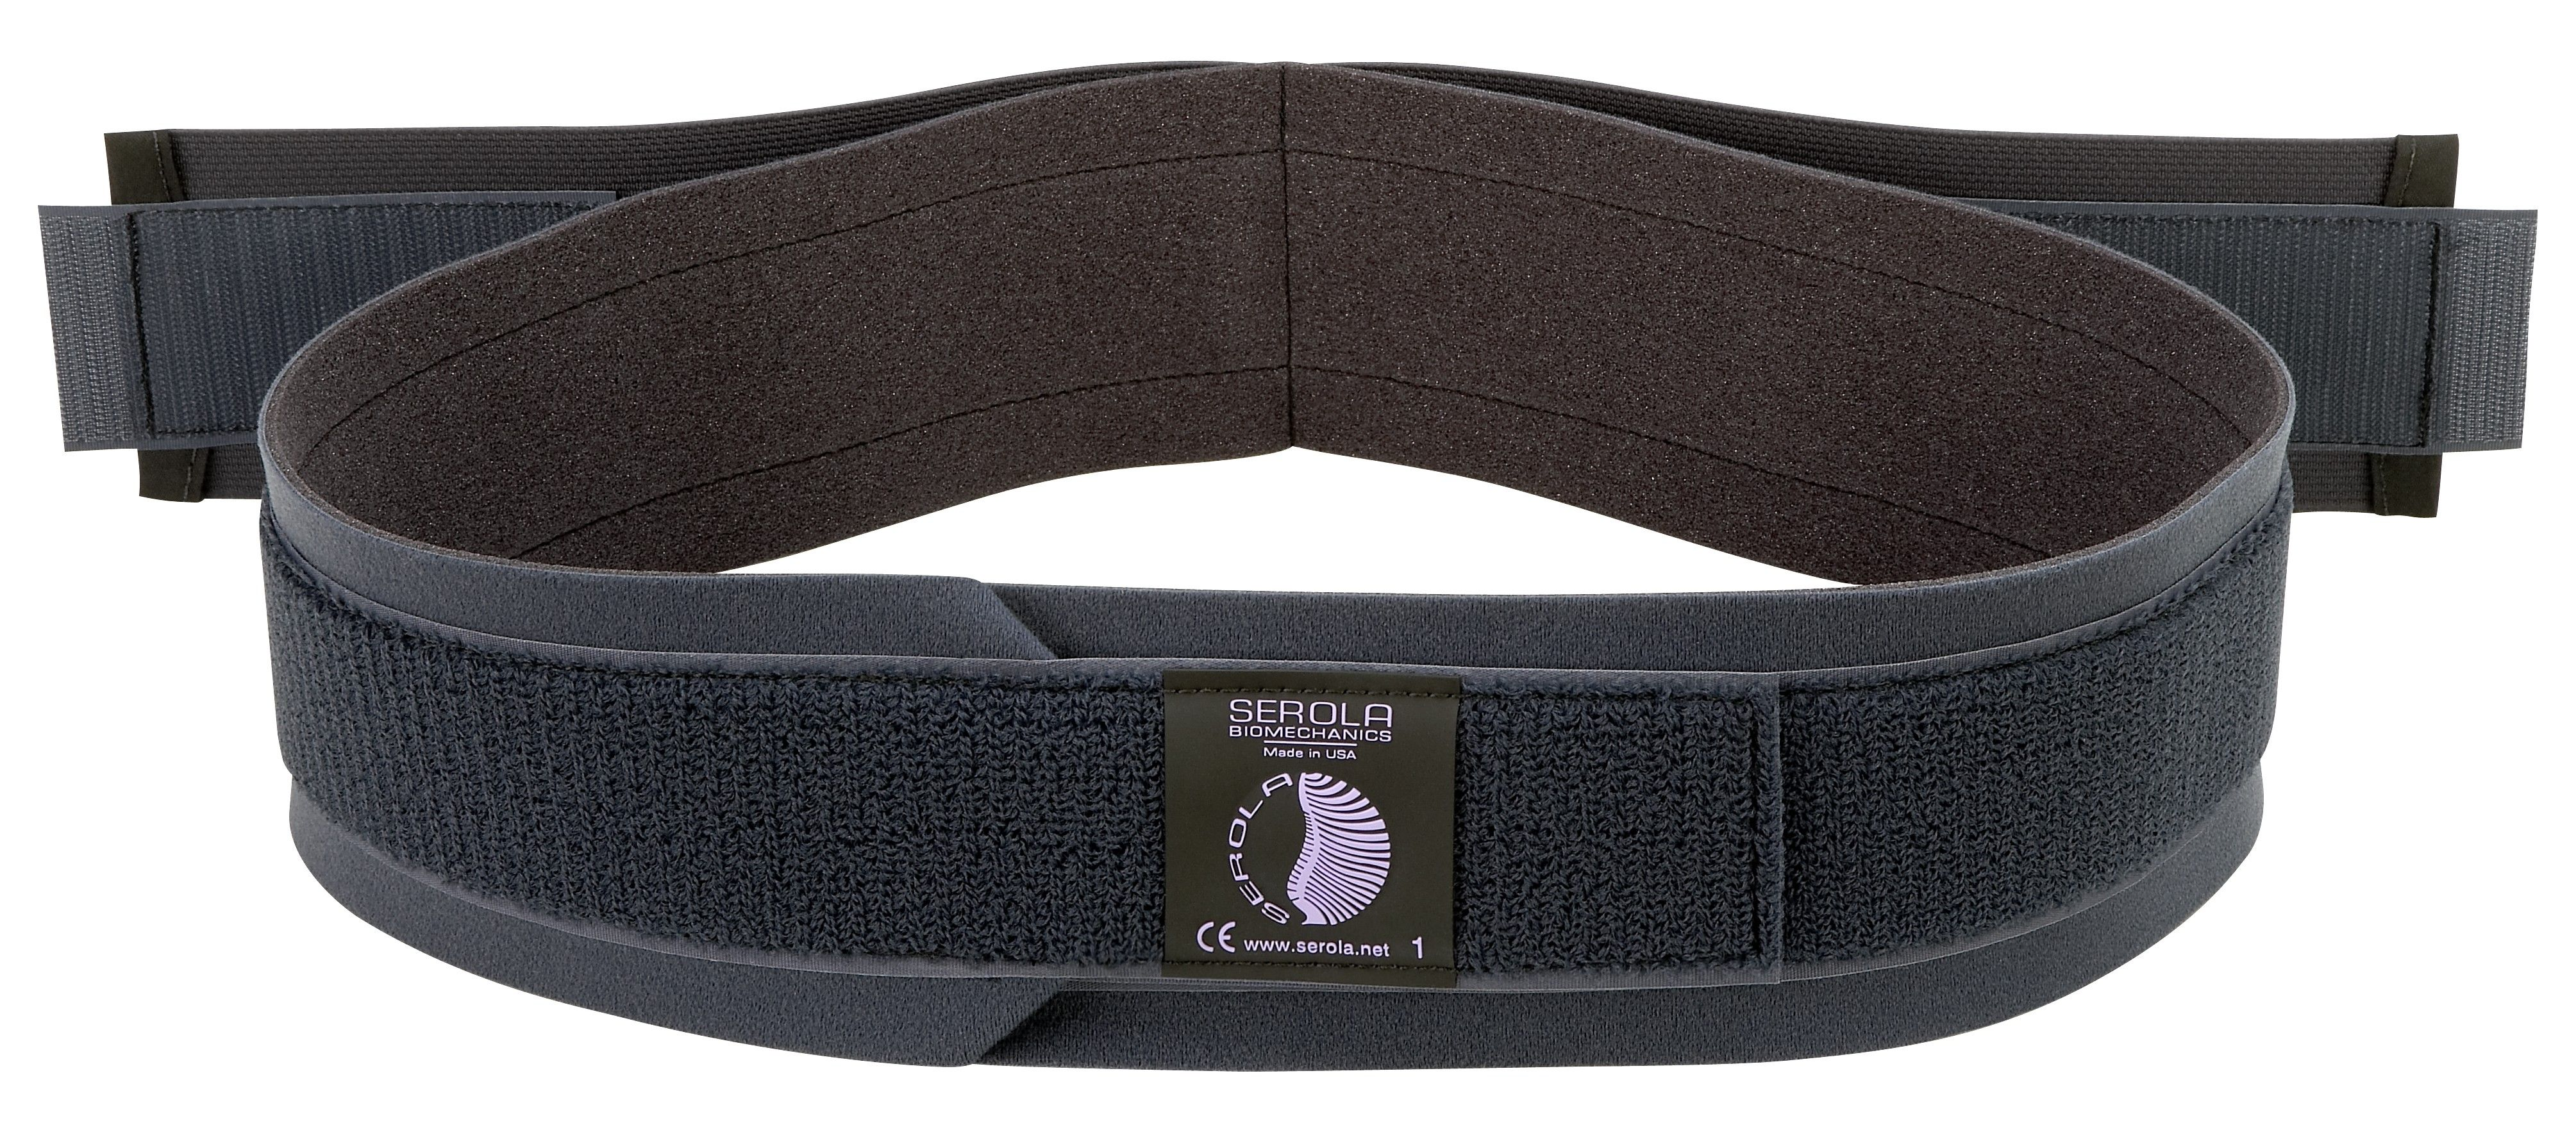 The Serola Sacroiliac Belt - I bought this for my Ehlers-Danlos Syndrome: SI & hip subluxations & dislocations (also helped my sensory processing disorder a bit too).